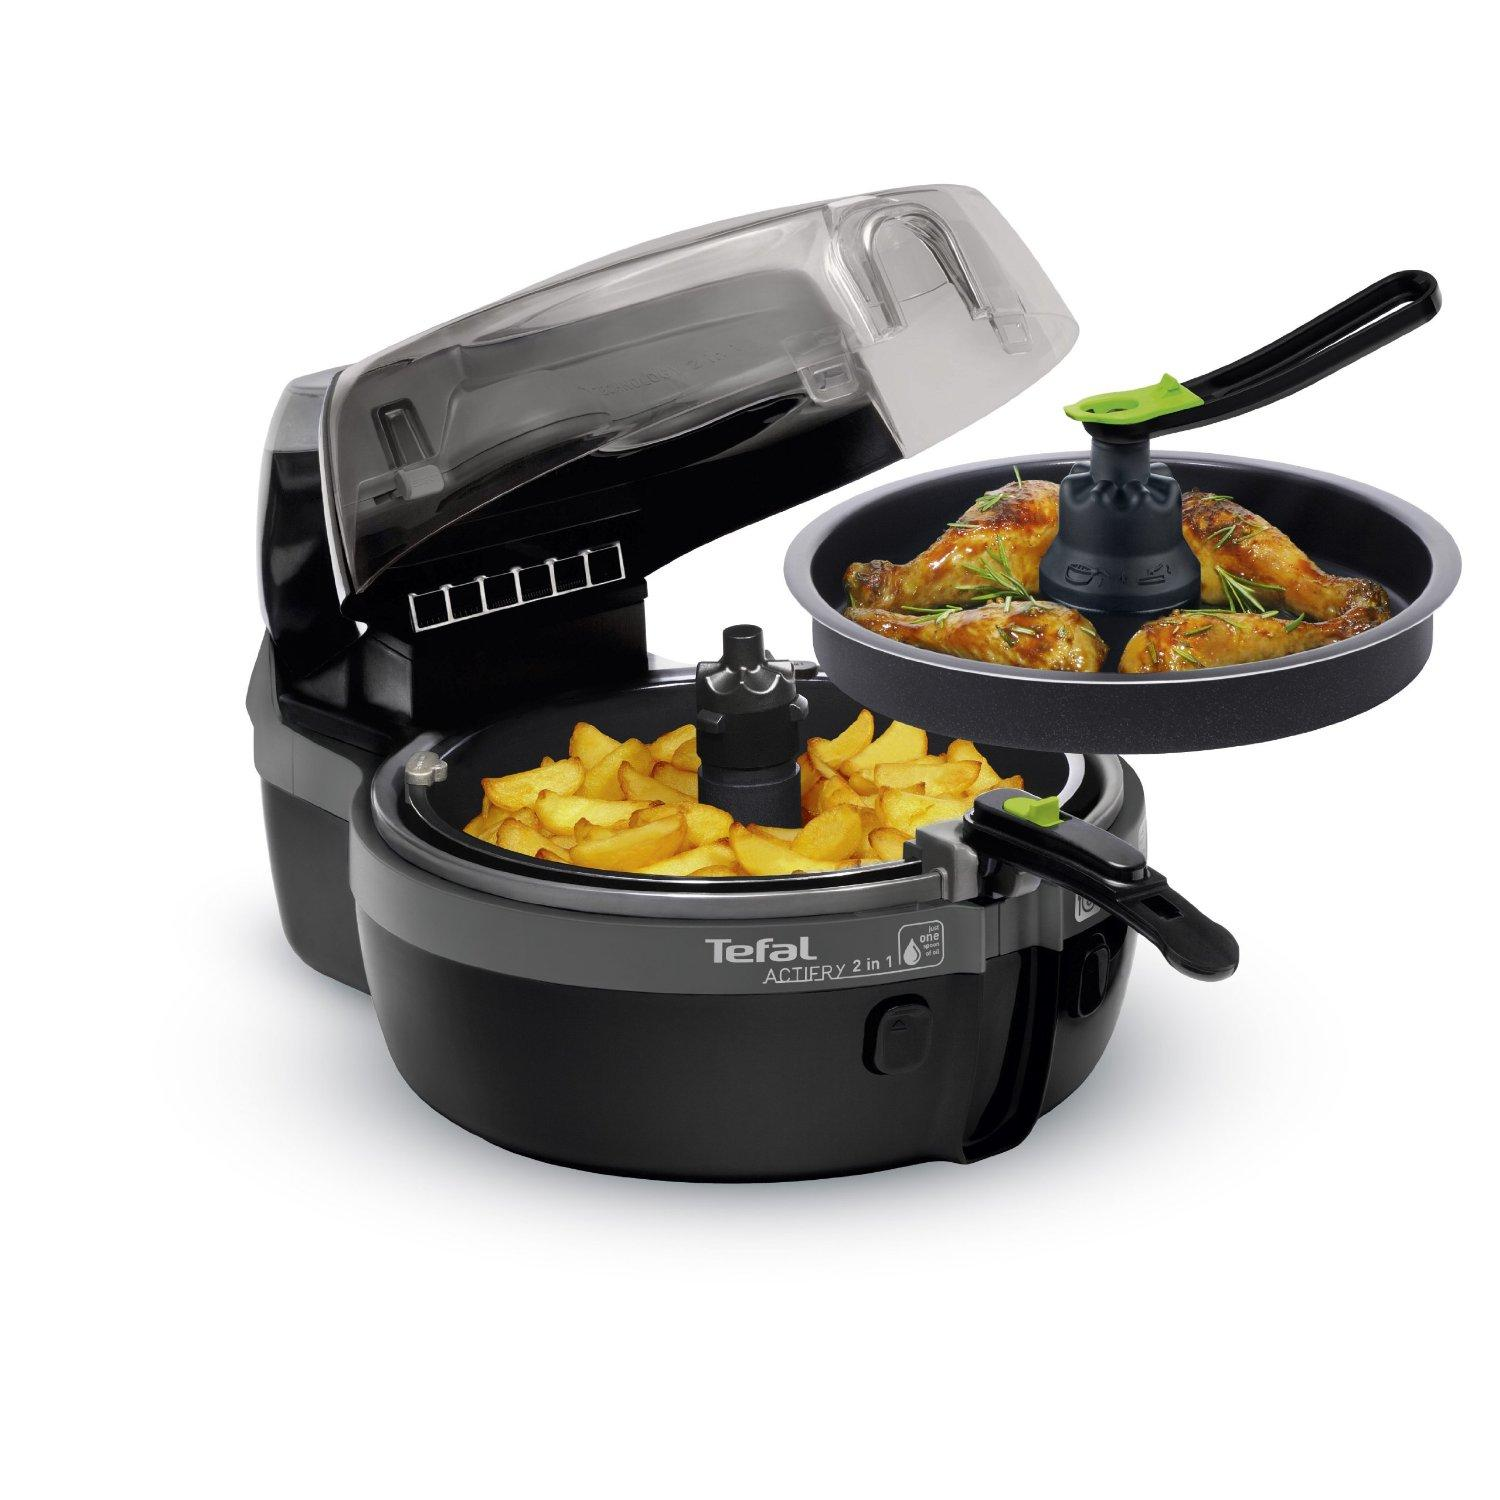 Tefal - YV9601 - Friteuse actifry family 6 personnes